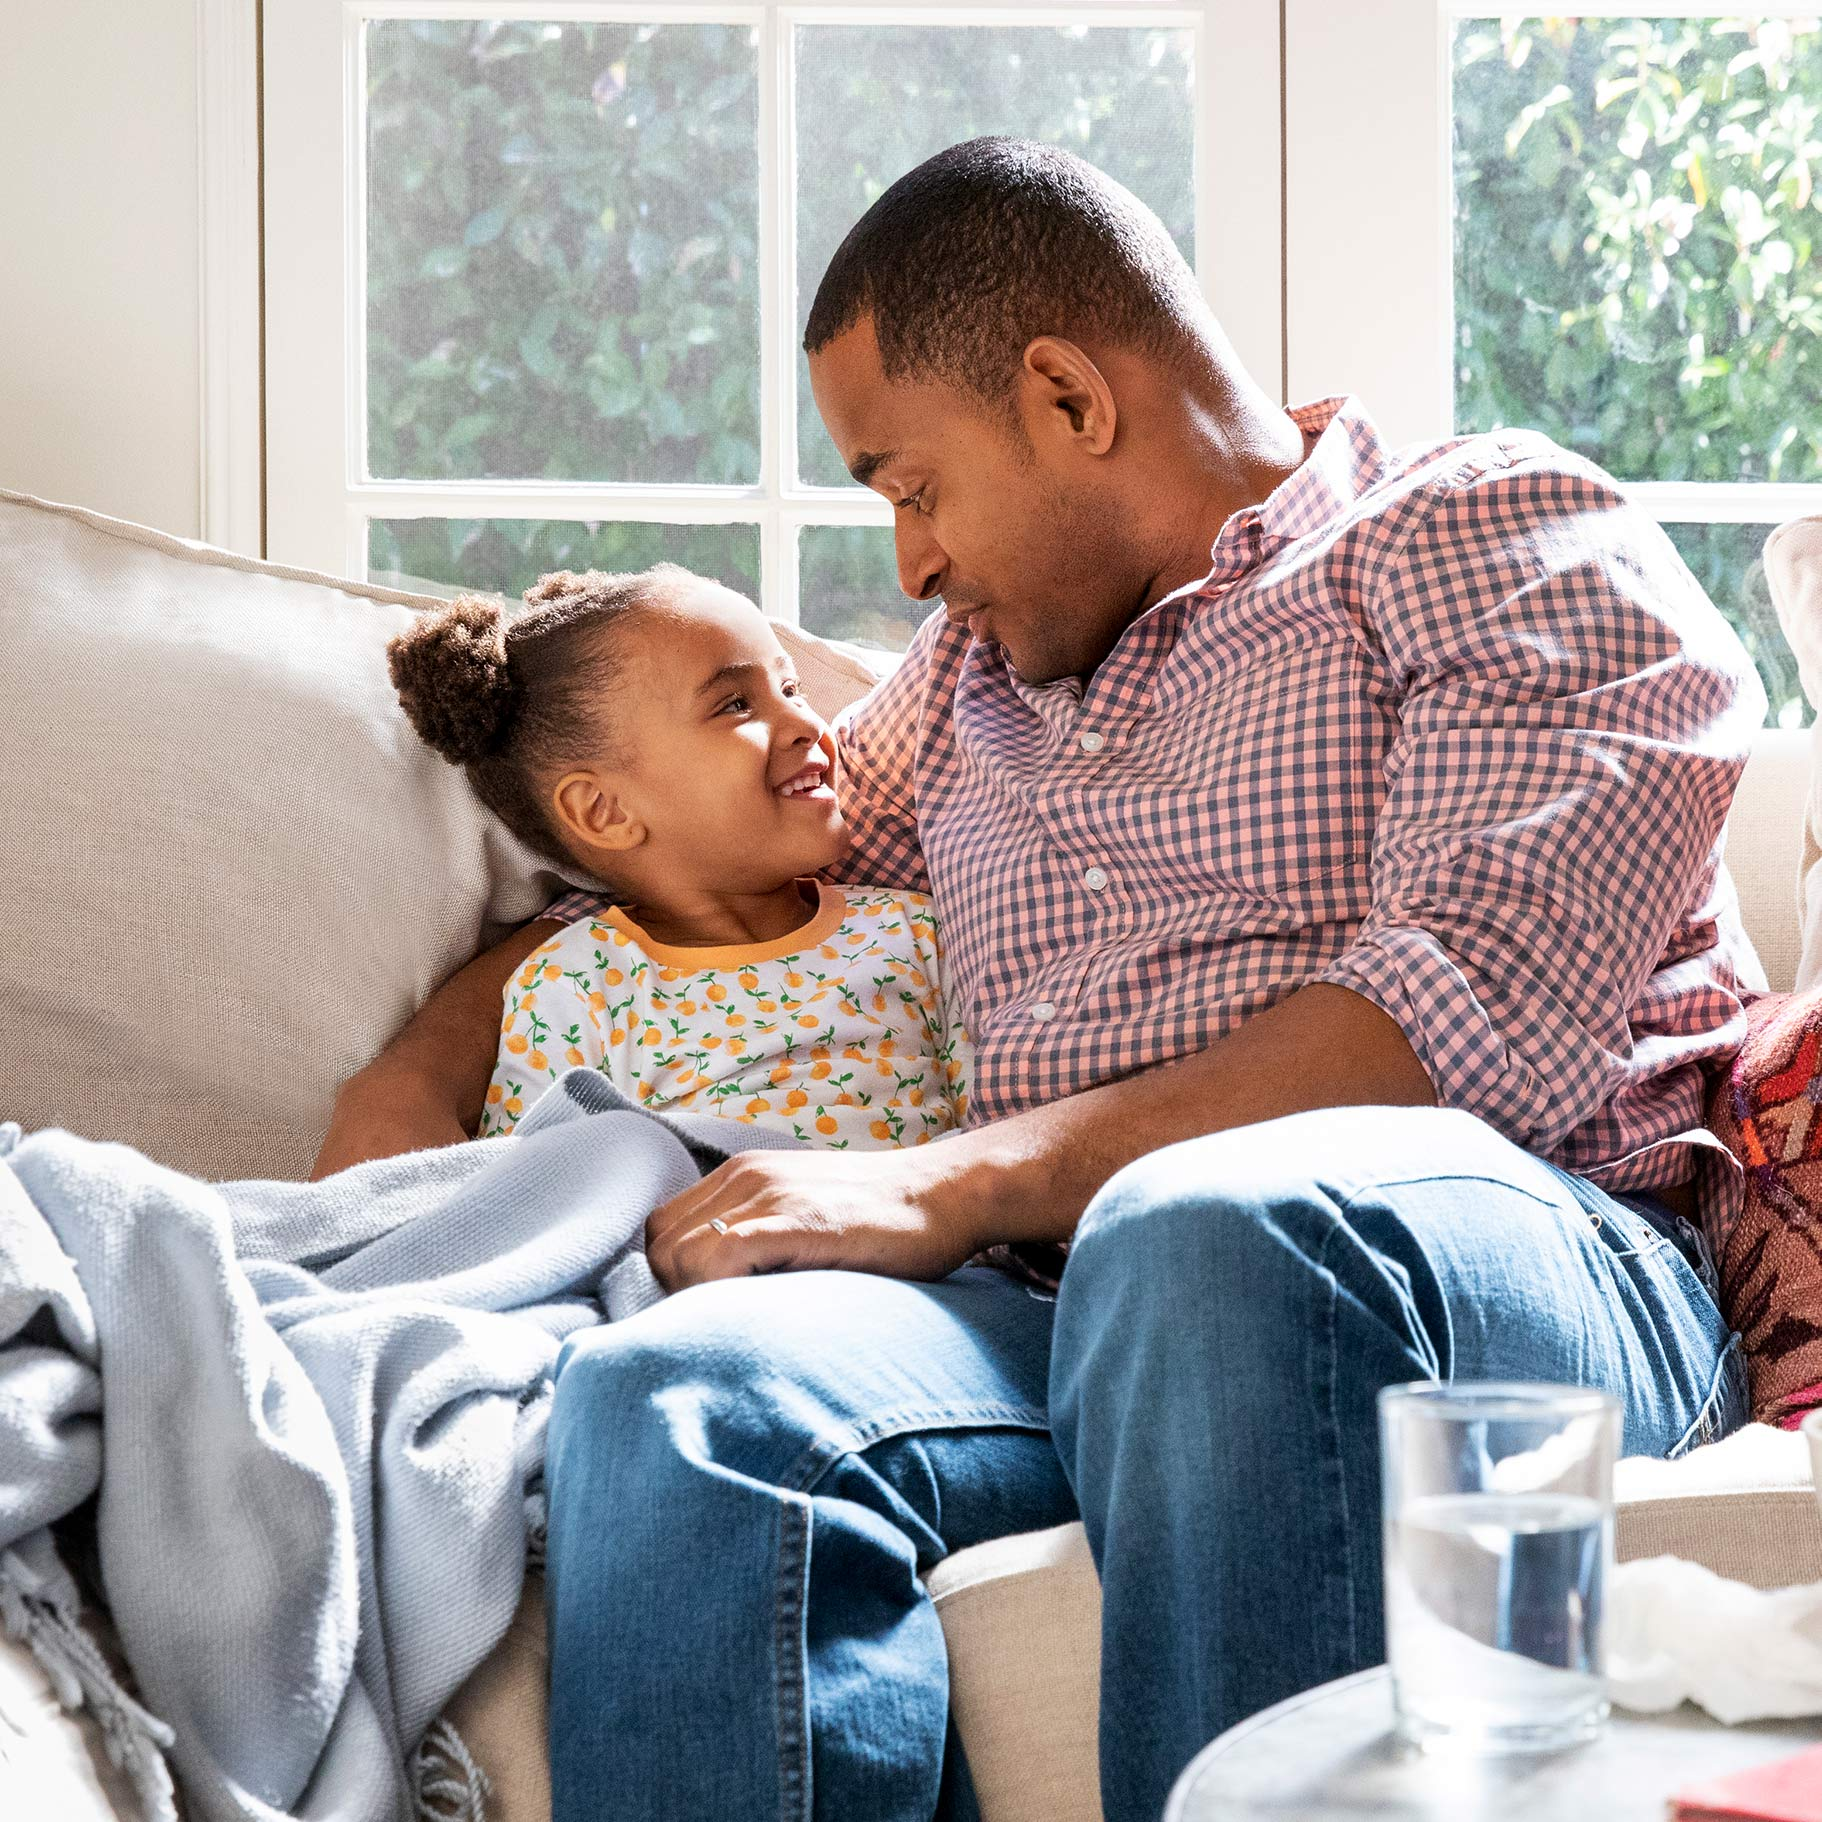 A father and daughter sit on a sofa in their brightly-lit living room, with a CVS Pharmacy delivery box seen in the foreground containing an assortment of products.